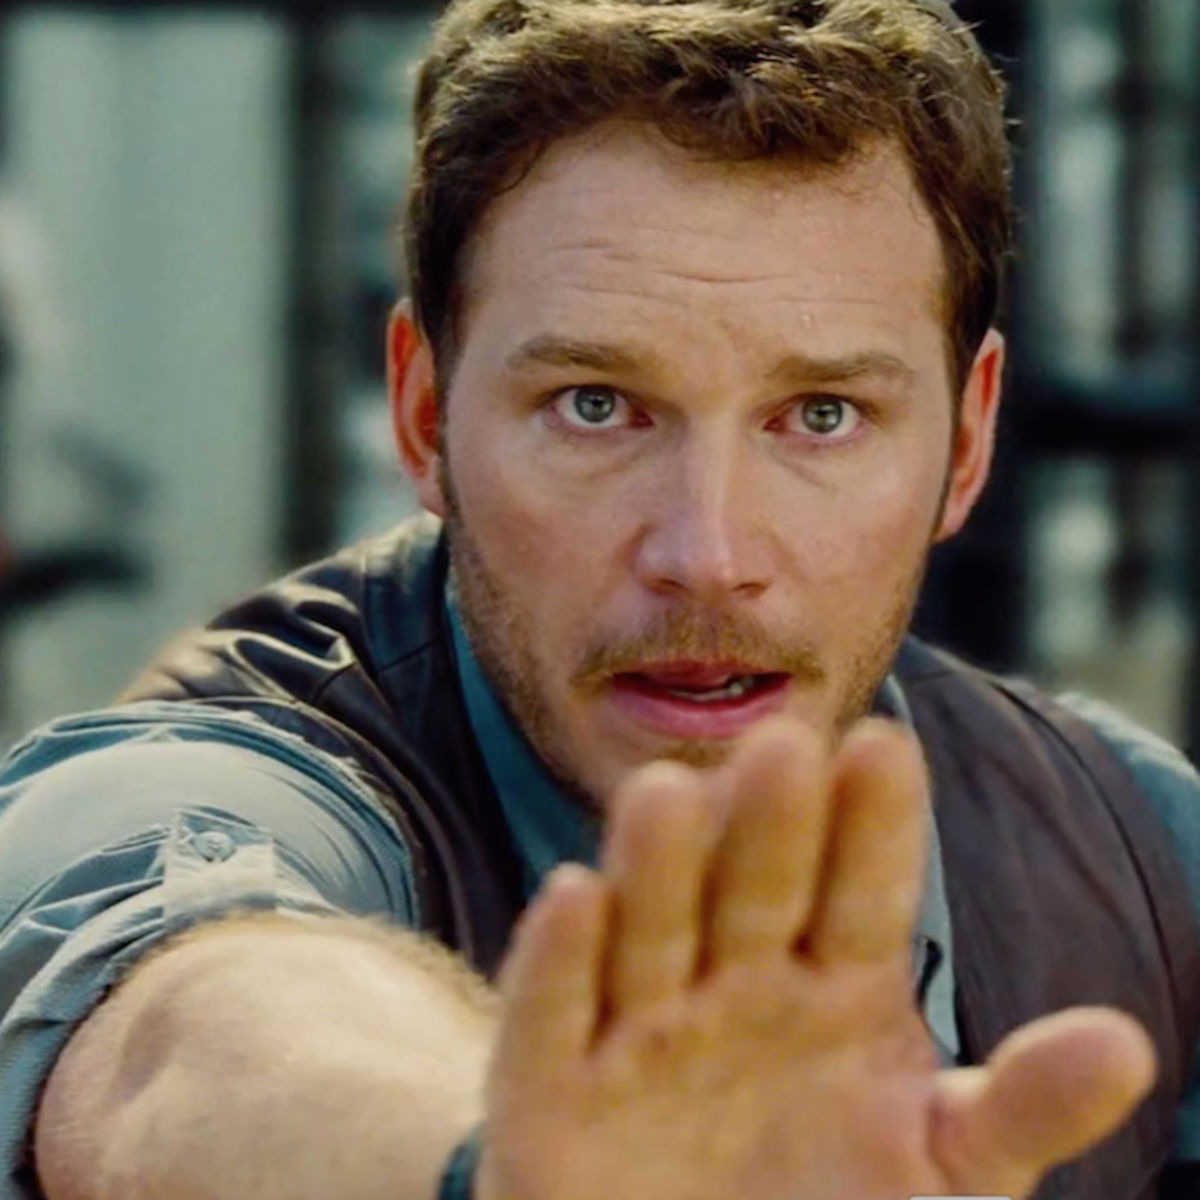 Jurassic-World-Trailer-Still-3_0.jpg